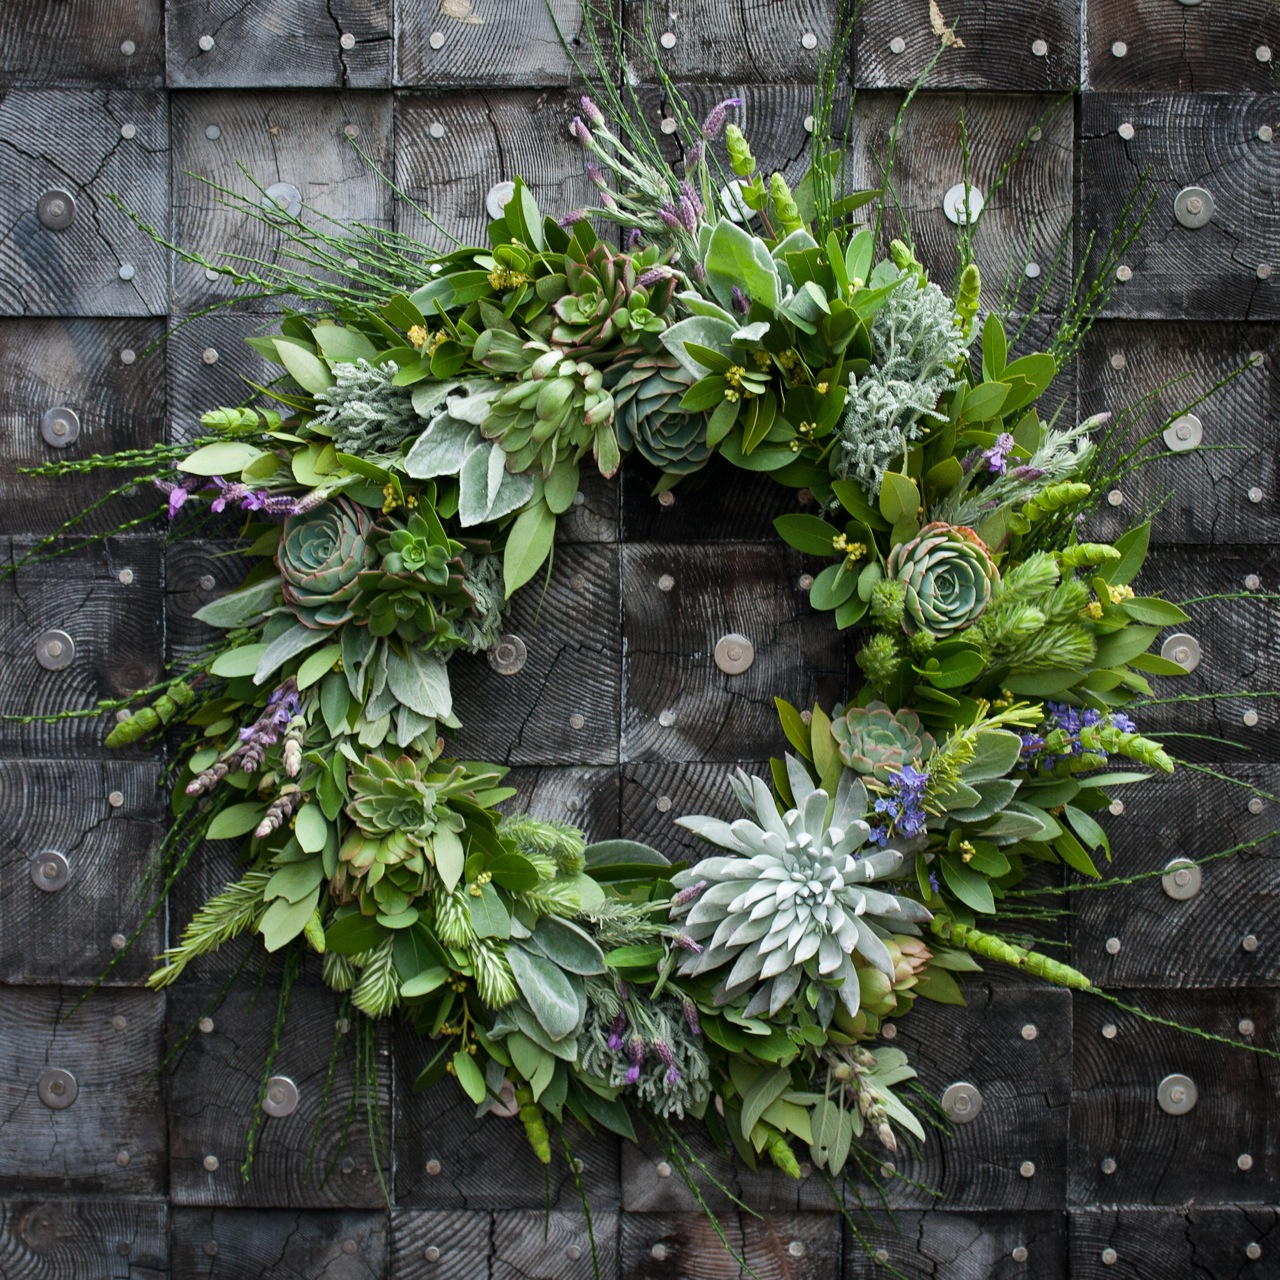 Create a Succulent Wreath